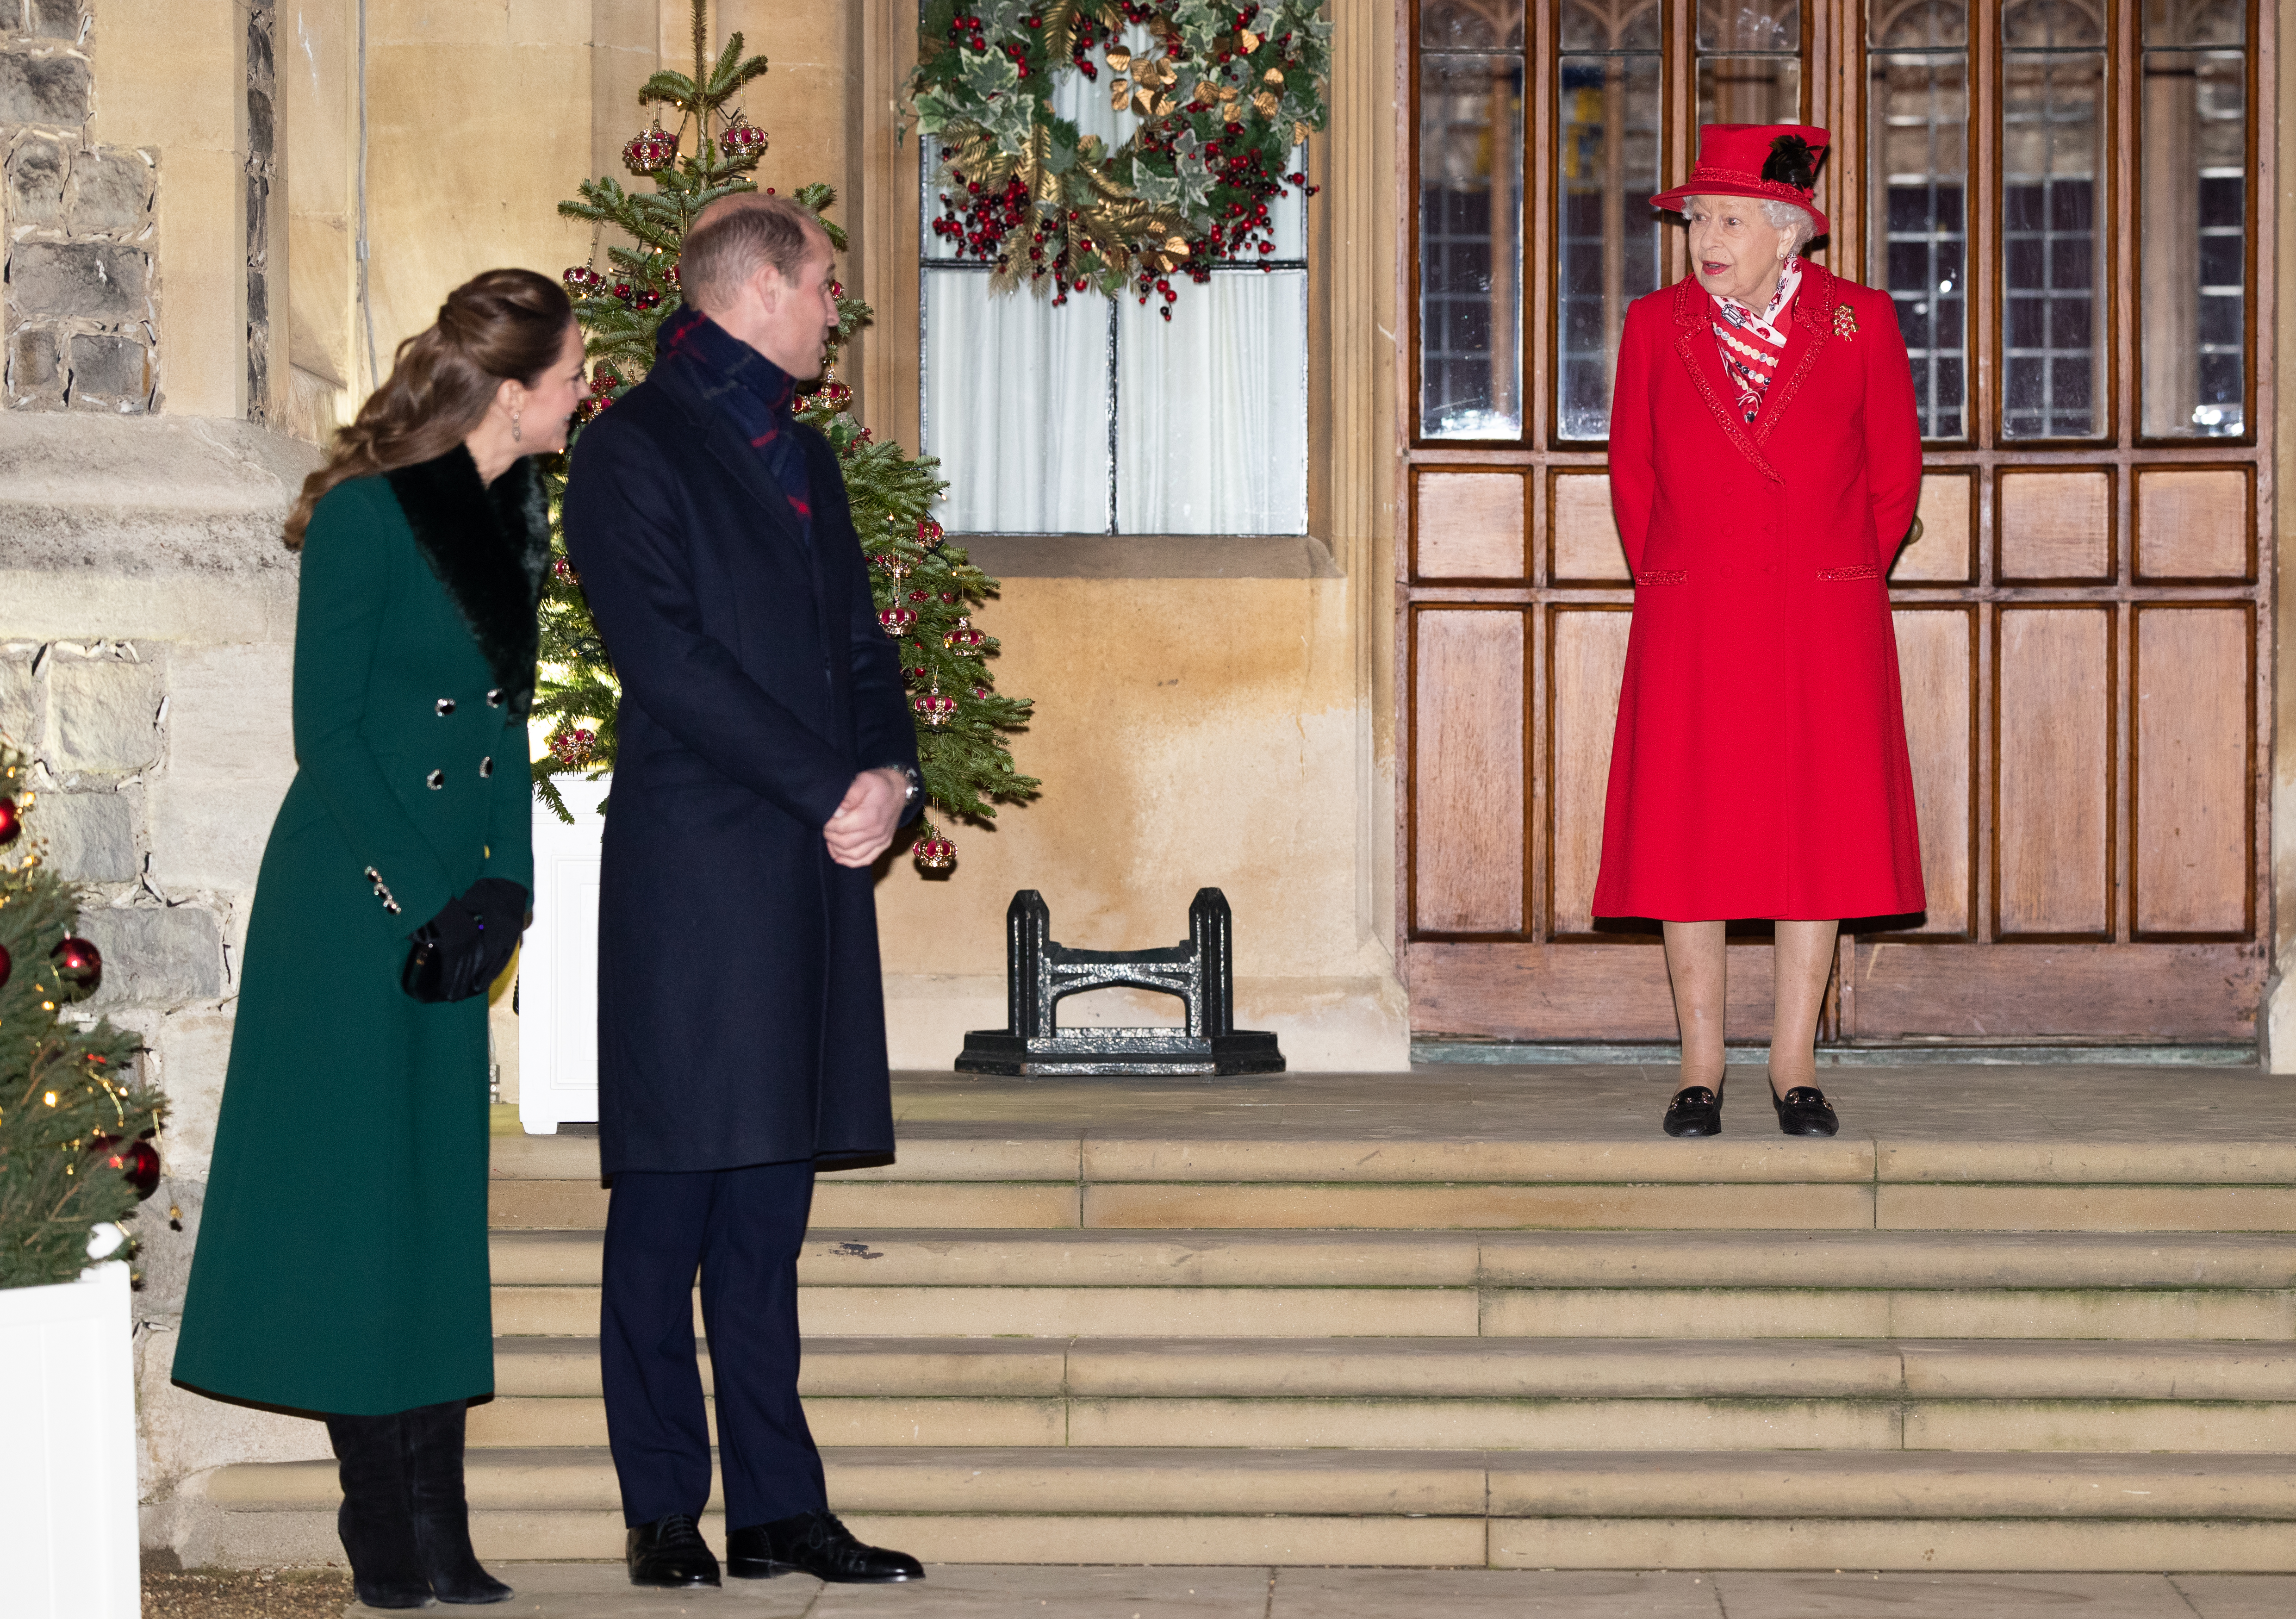 WINDSOR, ENGLAND - DECEMBER 08: Catherine, Duchess of Cambridge, Prince William, Duke of Cambridge and Queen Elizabeth II wait to thank local volunteers and key workers for the work they are doing during the coronavirus pandemic and over Christmas in the quadrangle of Windsor Castle on December 8, 2020 in Windsor, England (Photo by Pool/Samir Hussein/WireImage)